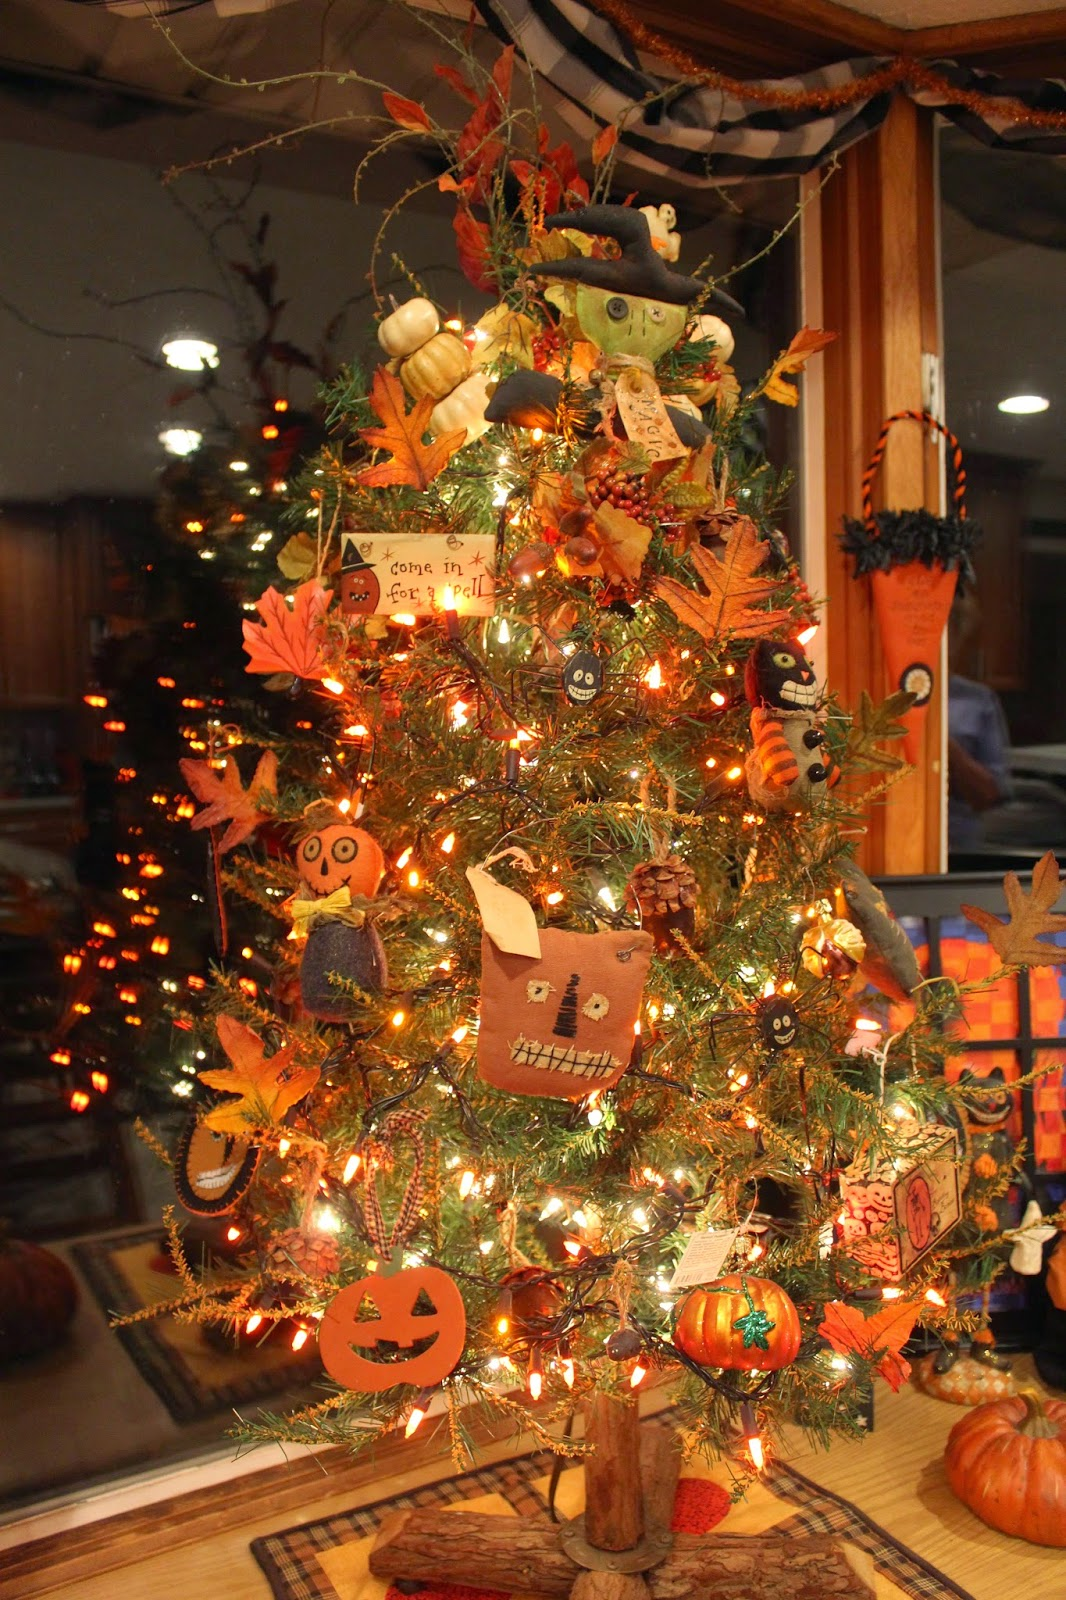 Http Ohiothoughtsblog Blogspot Com 2014 10 Fall Decorated Christmas Tree Html